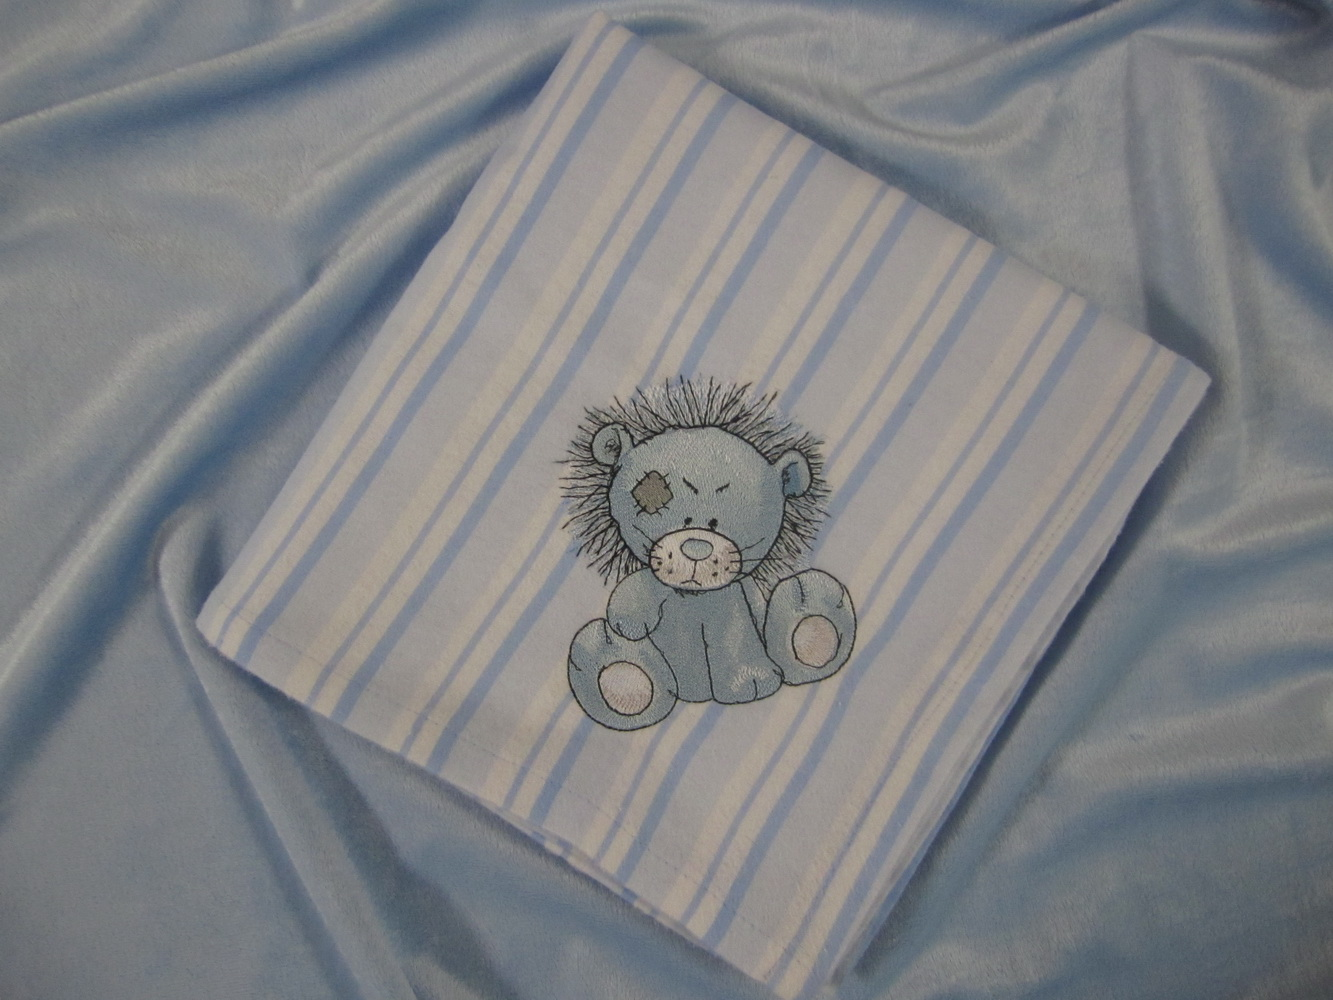 Rocky lion design embroidered on pillowcase